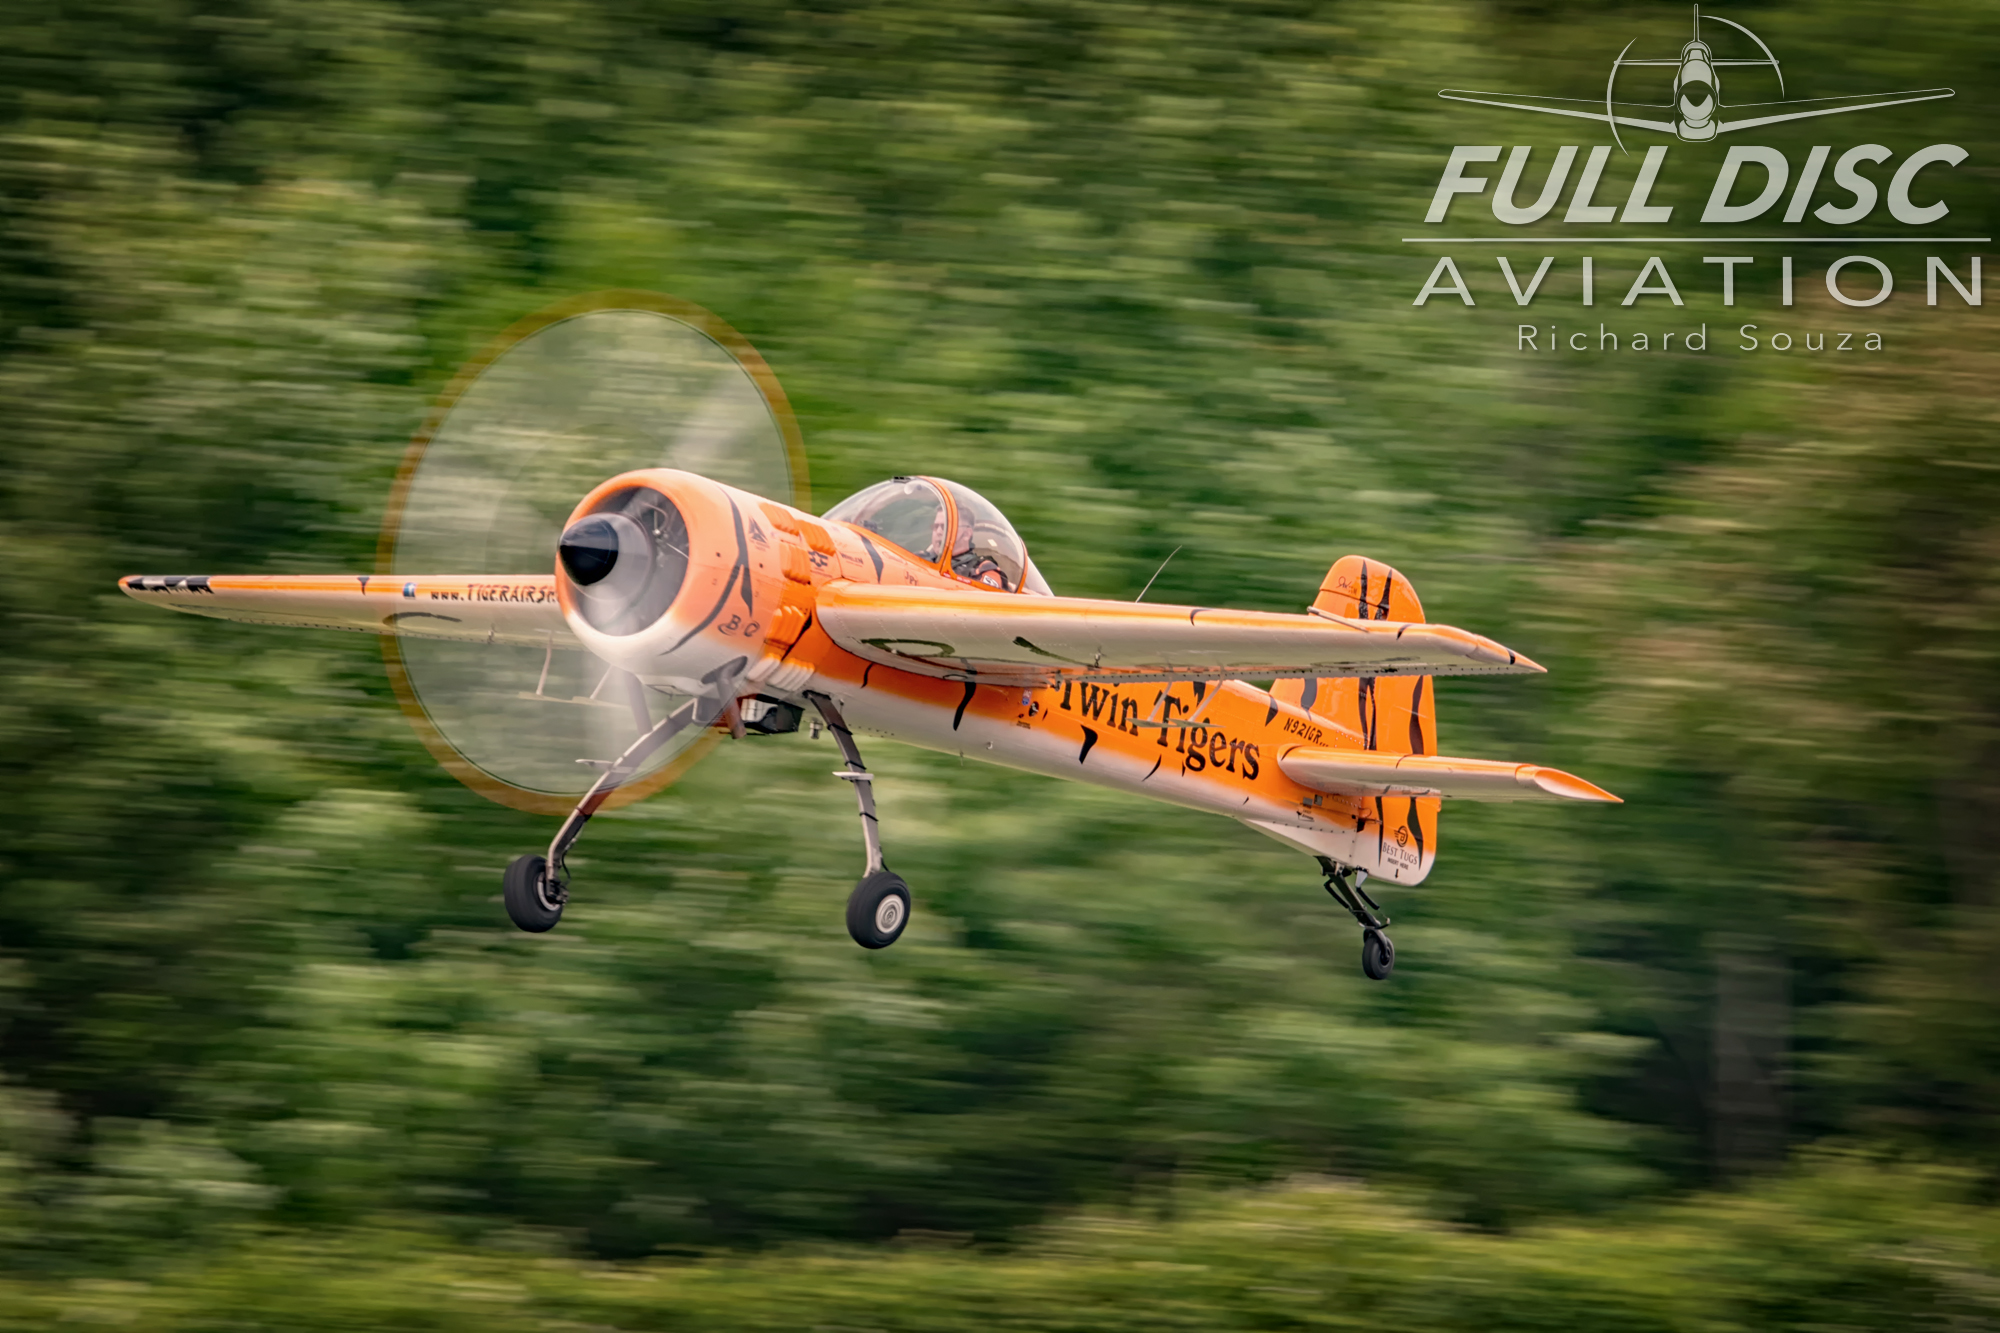 Greenwoodlake_FullDiscAviation_RichardSouza_4.jpg